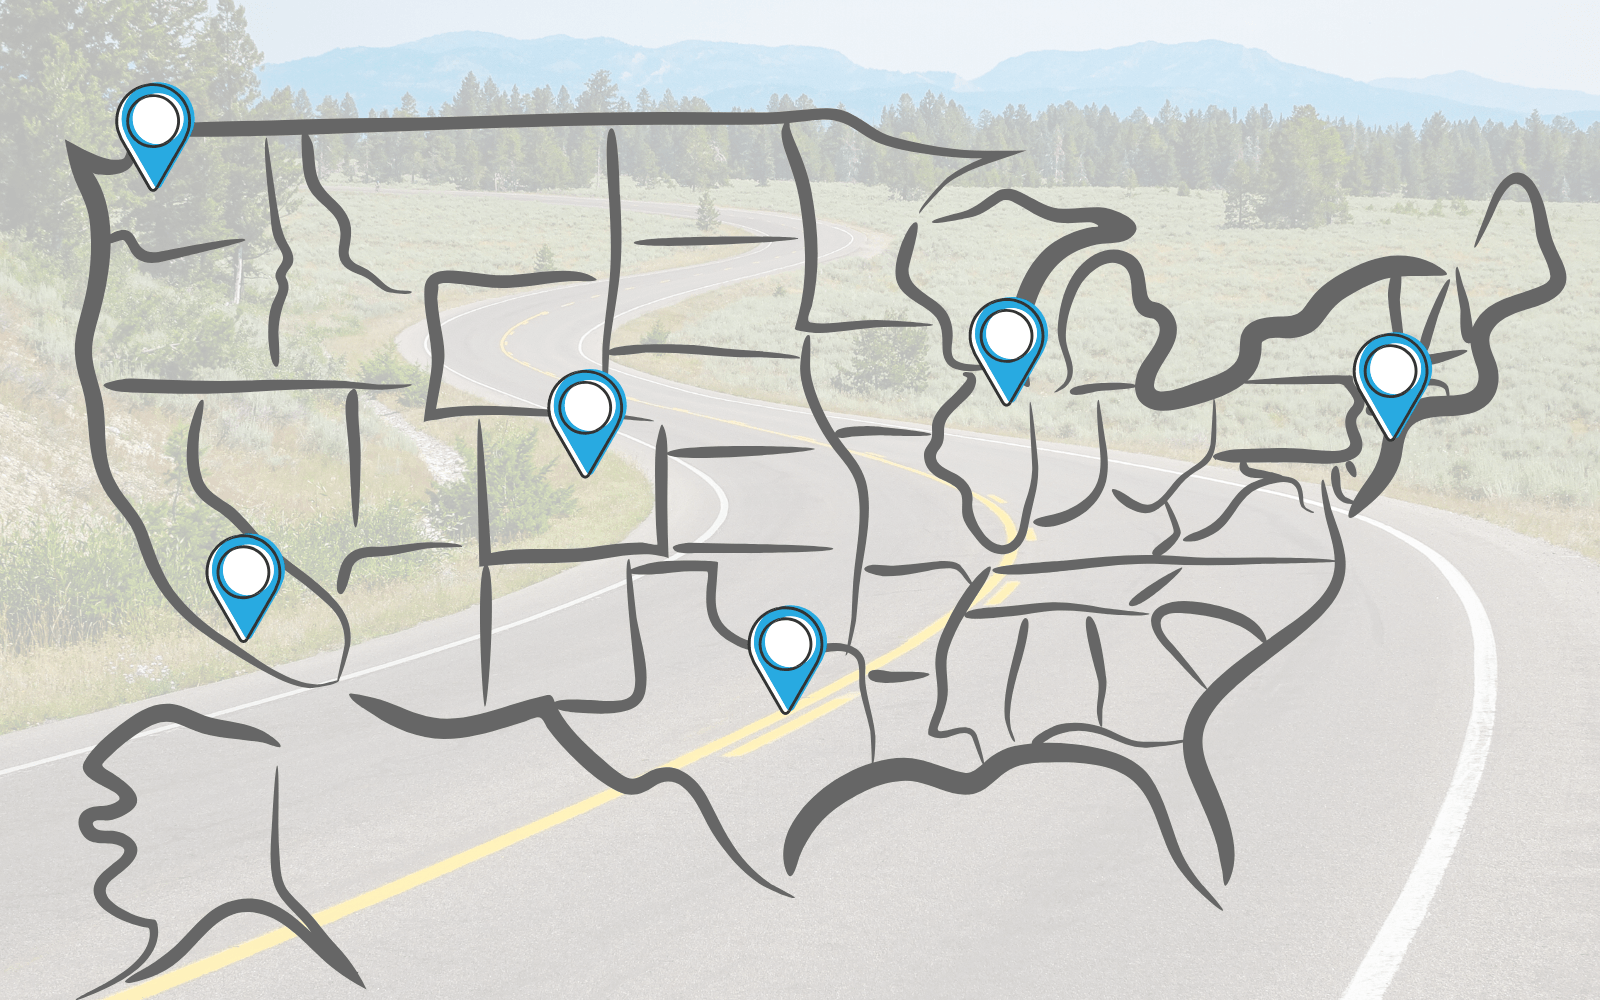 Driving trips from major US cities